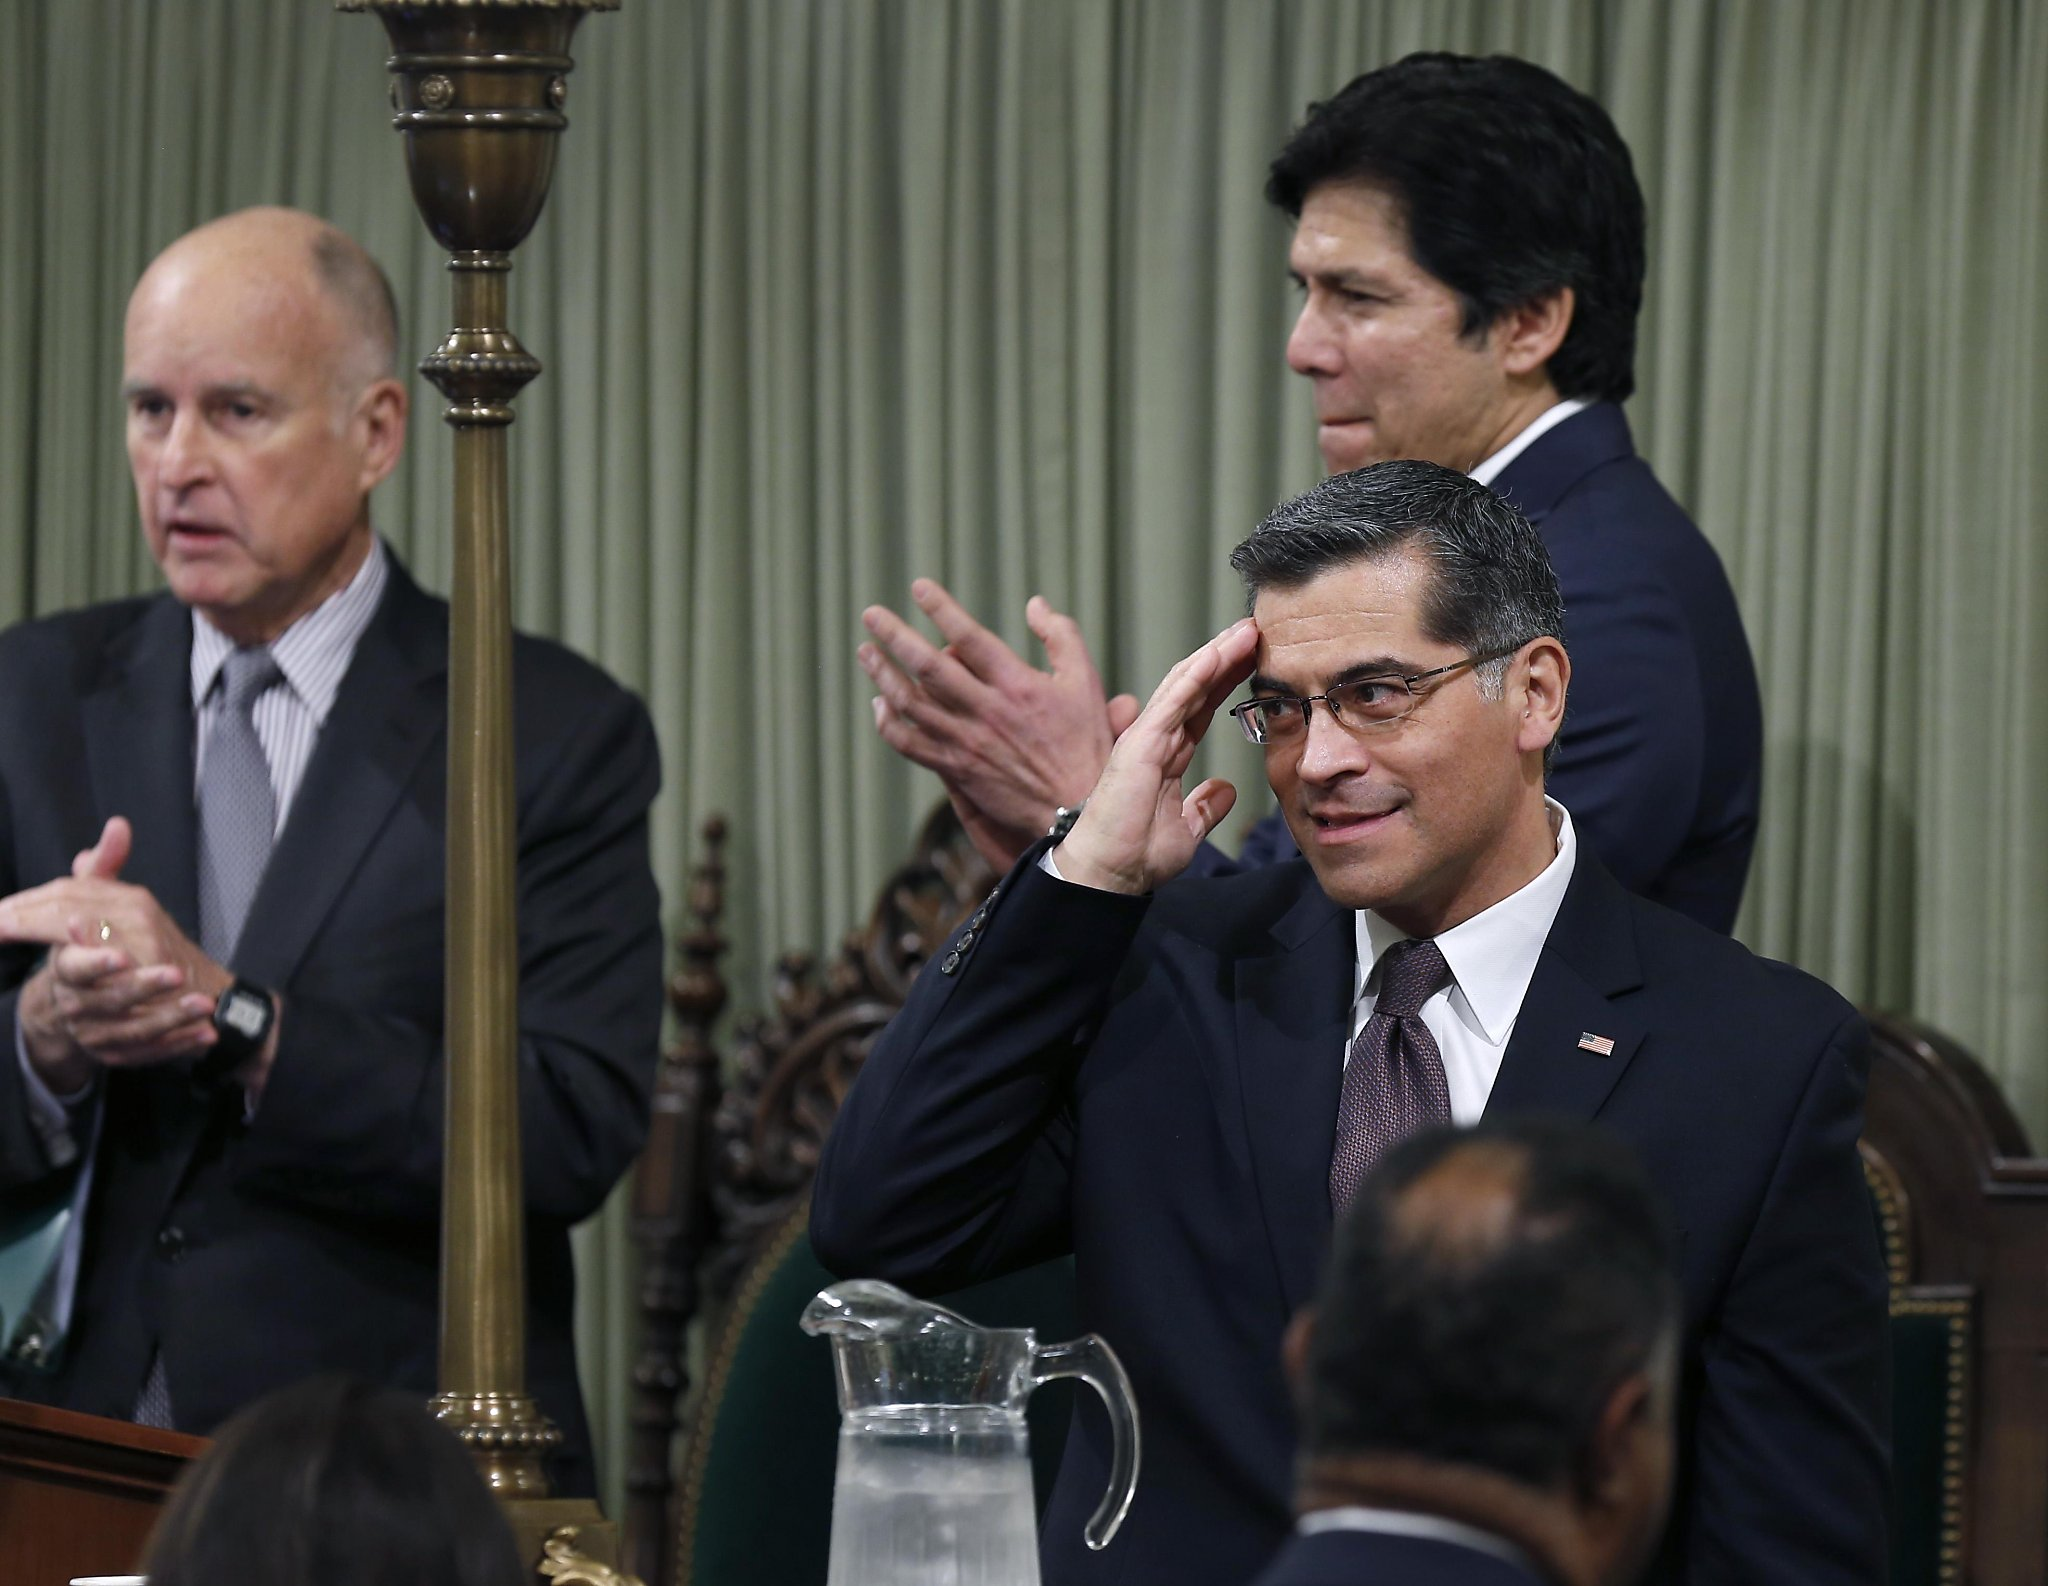 California attorney general's race roiled by Becerra appointment - San Francisco Chronicle